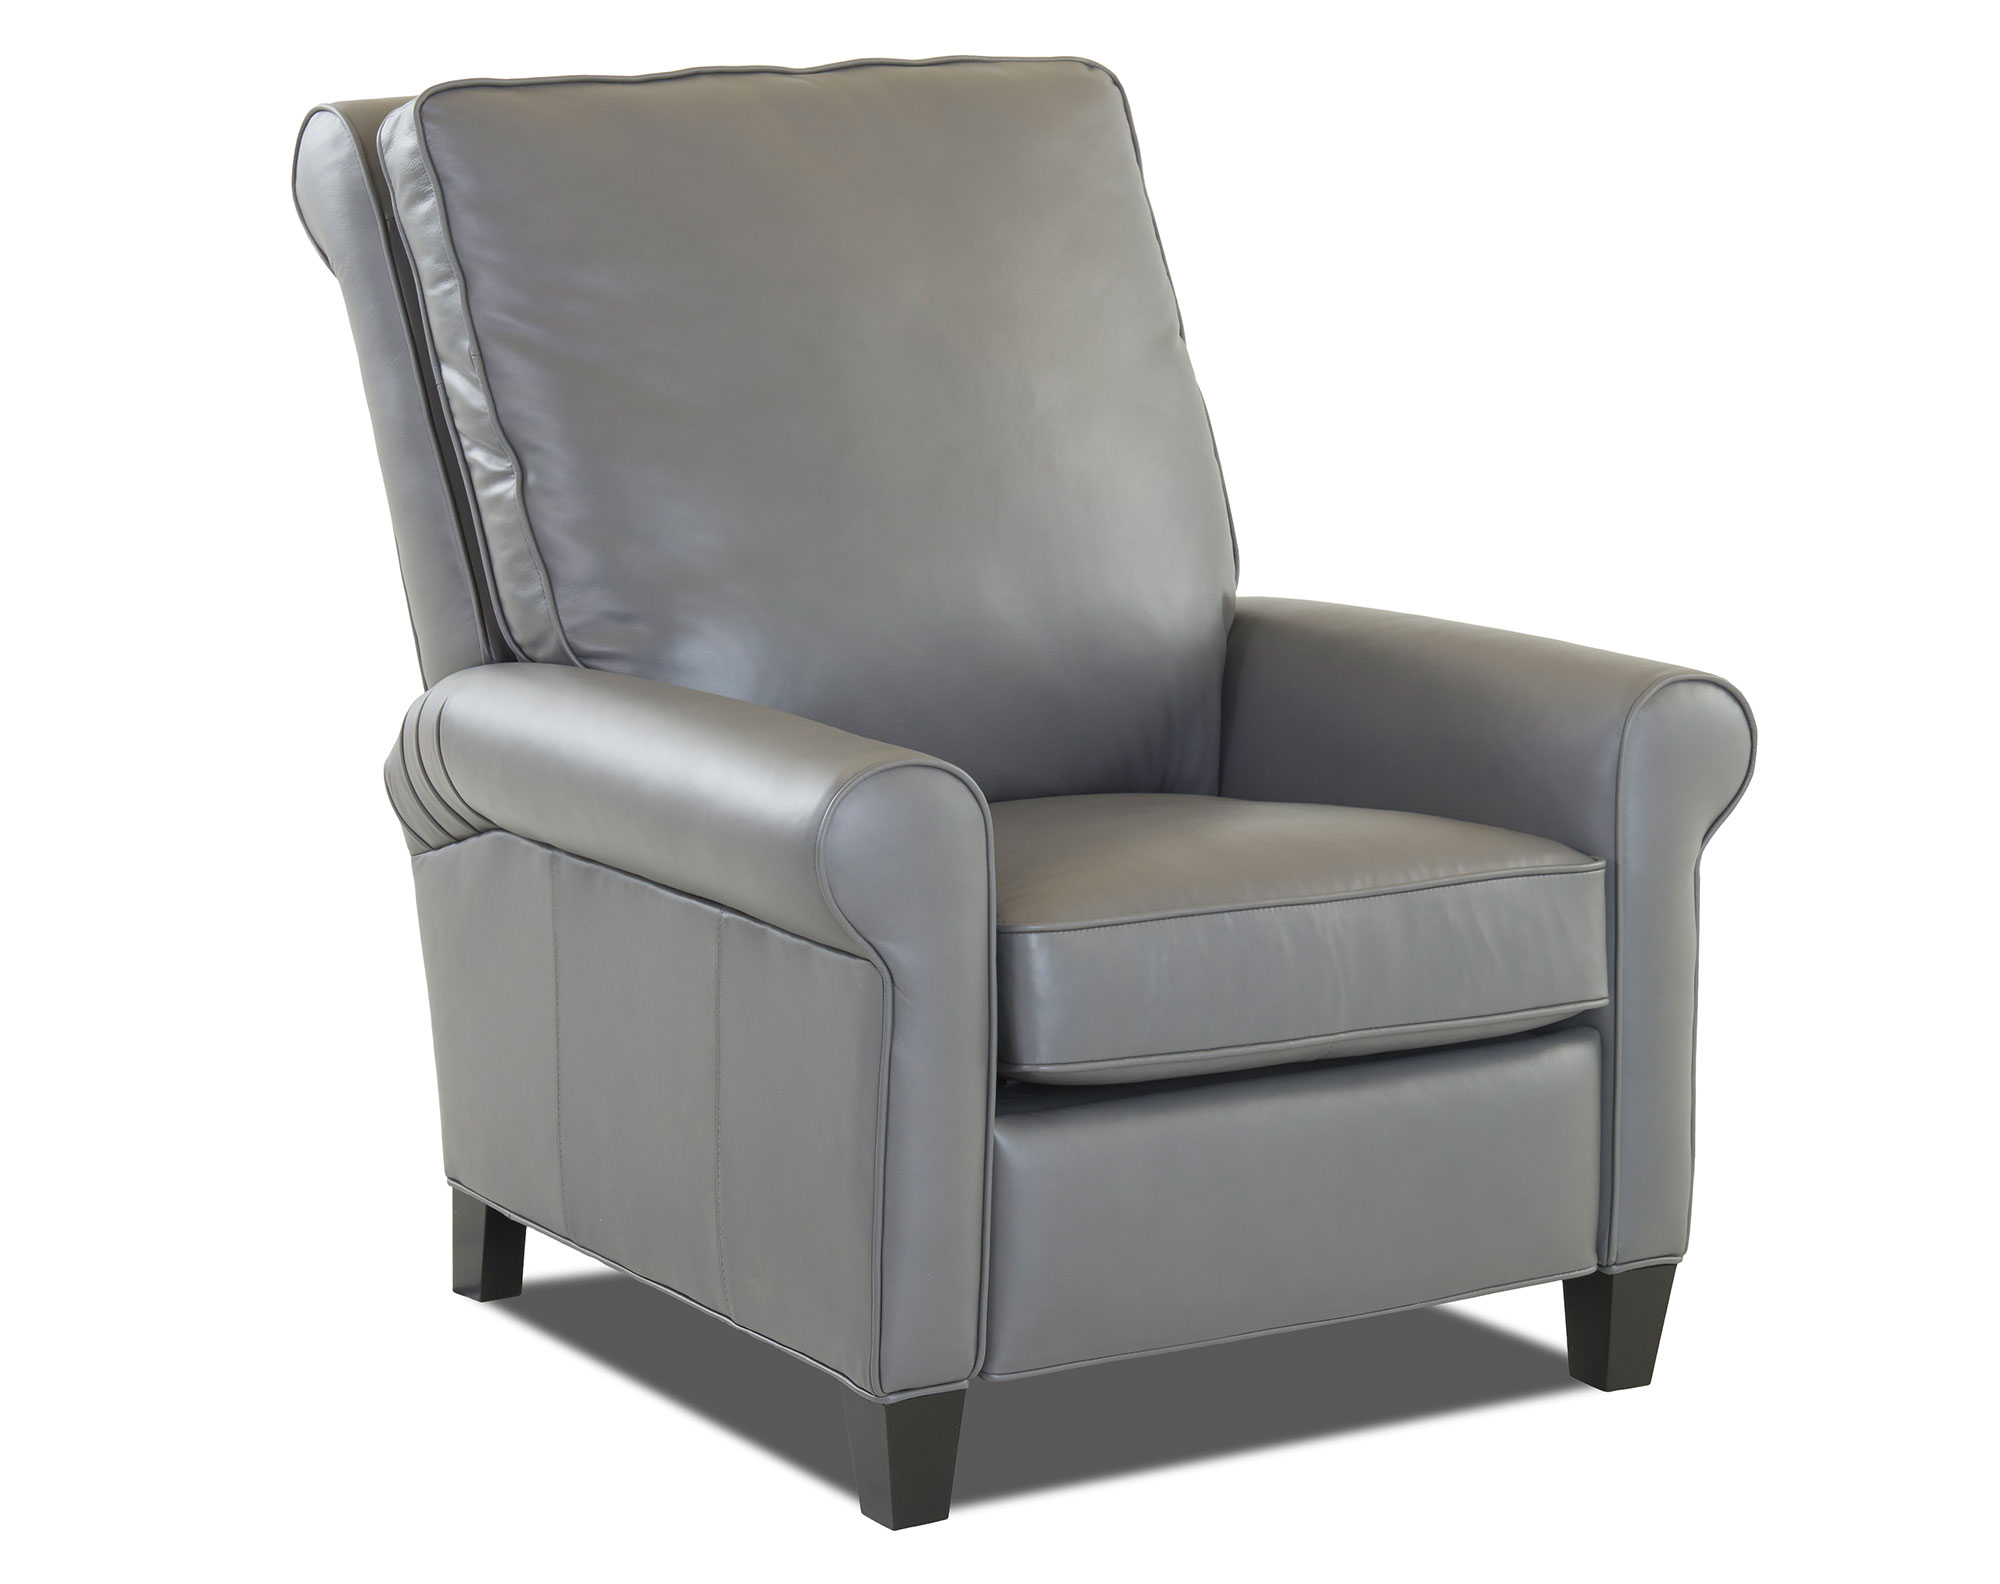 Strange El Grande High Leg Leather Reclining Chair Sofas And Alphanode Cool Chair Designs And Ideas Alphanodeonline